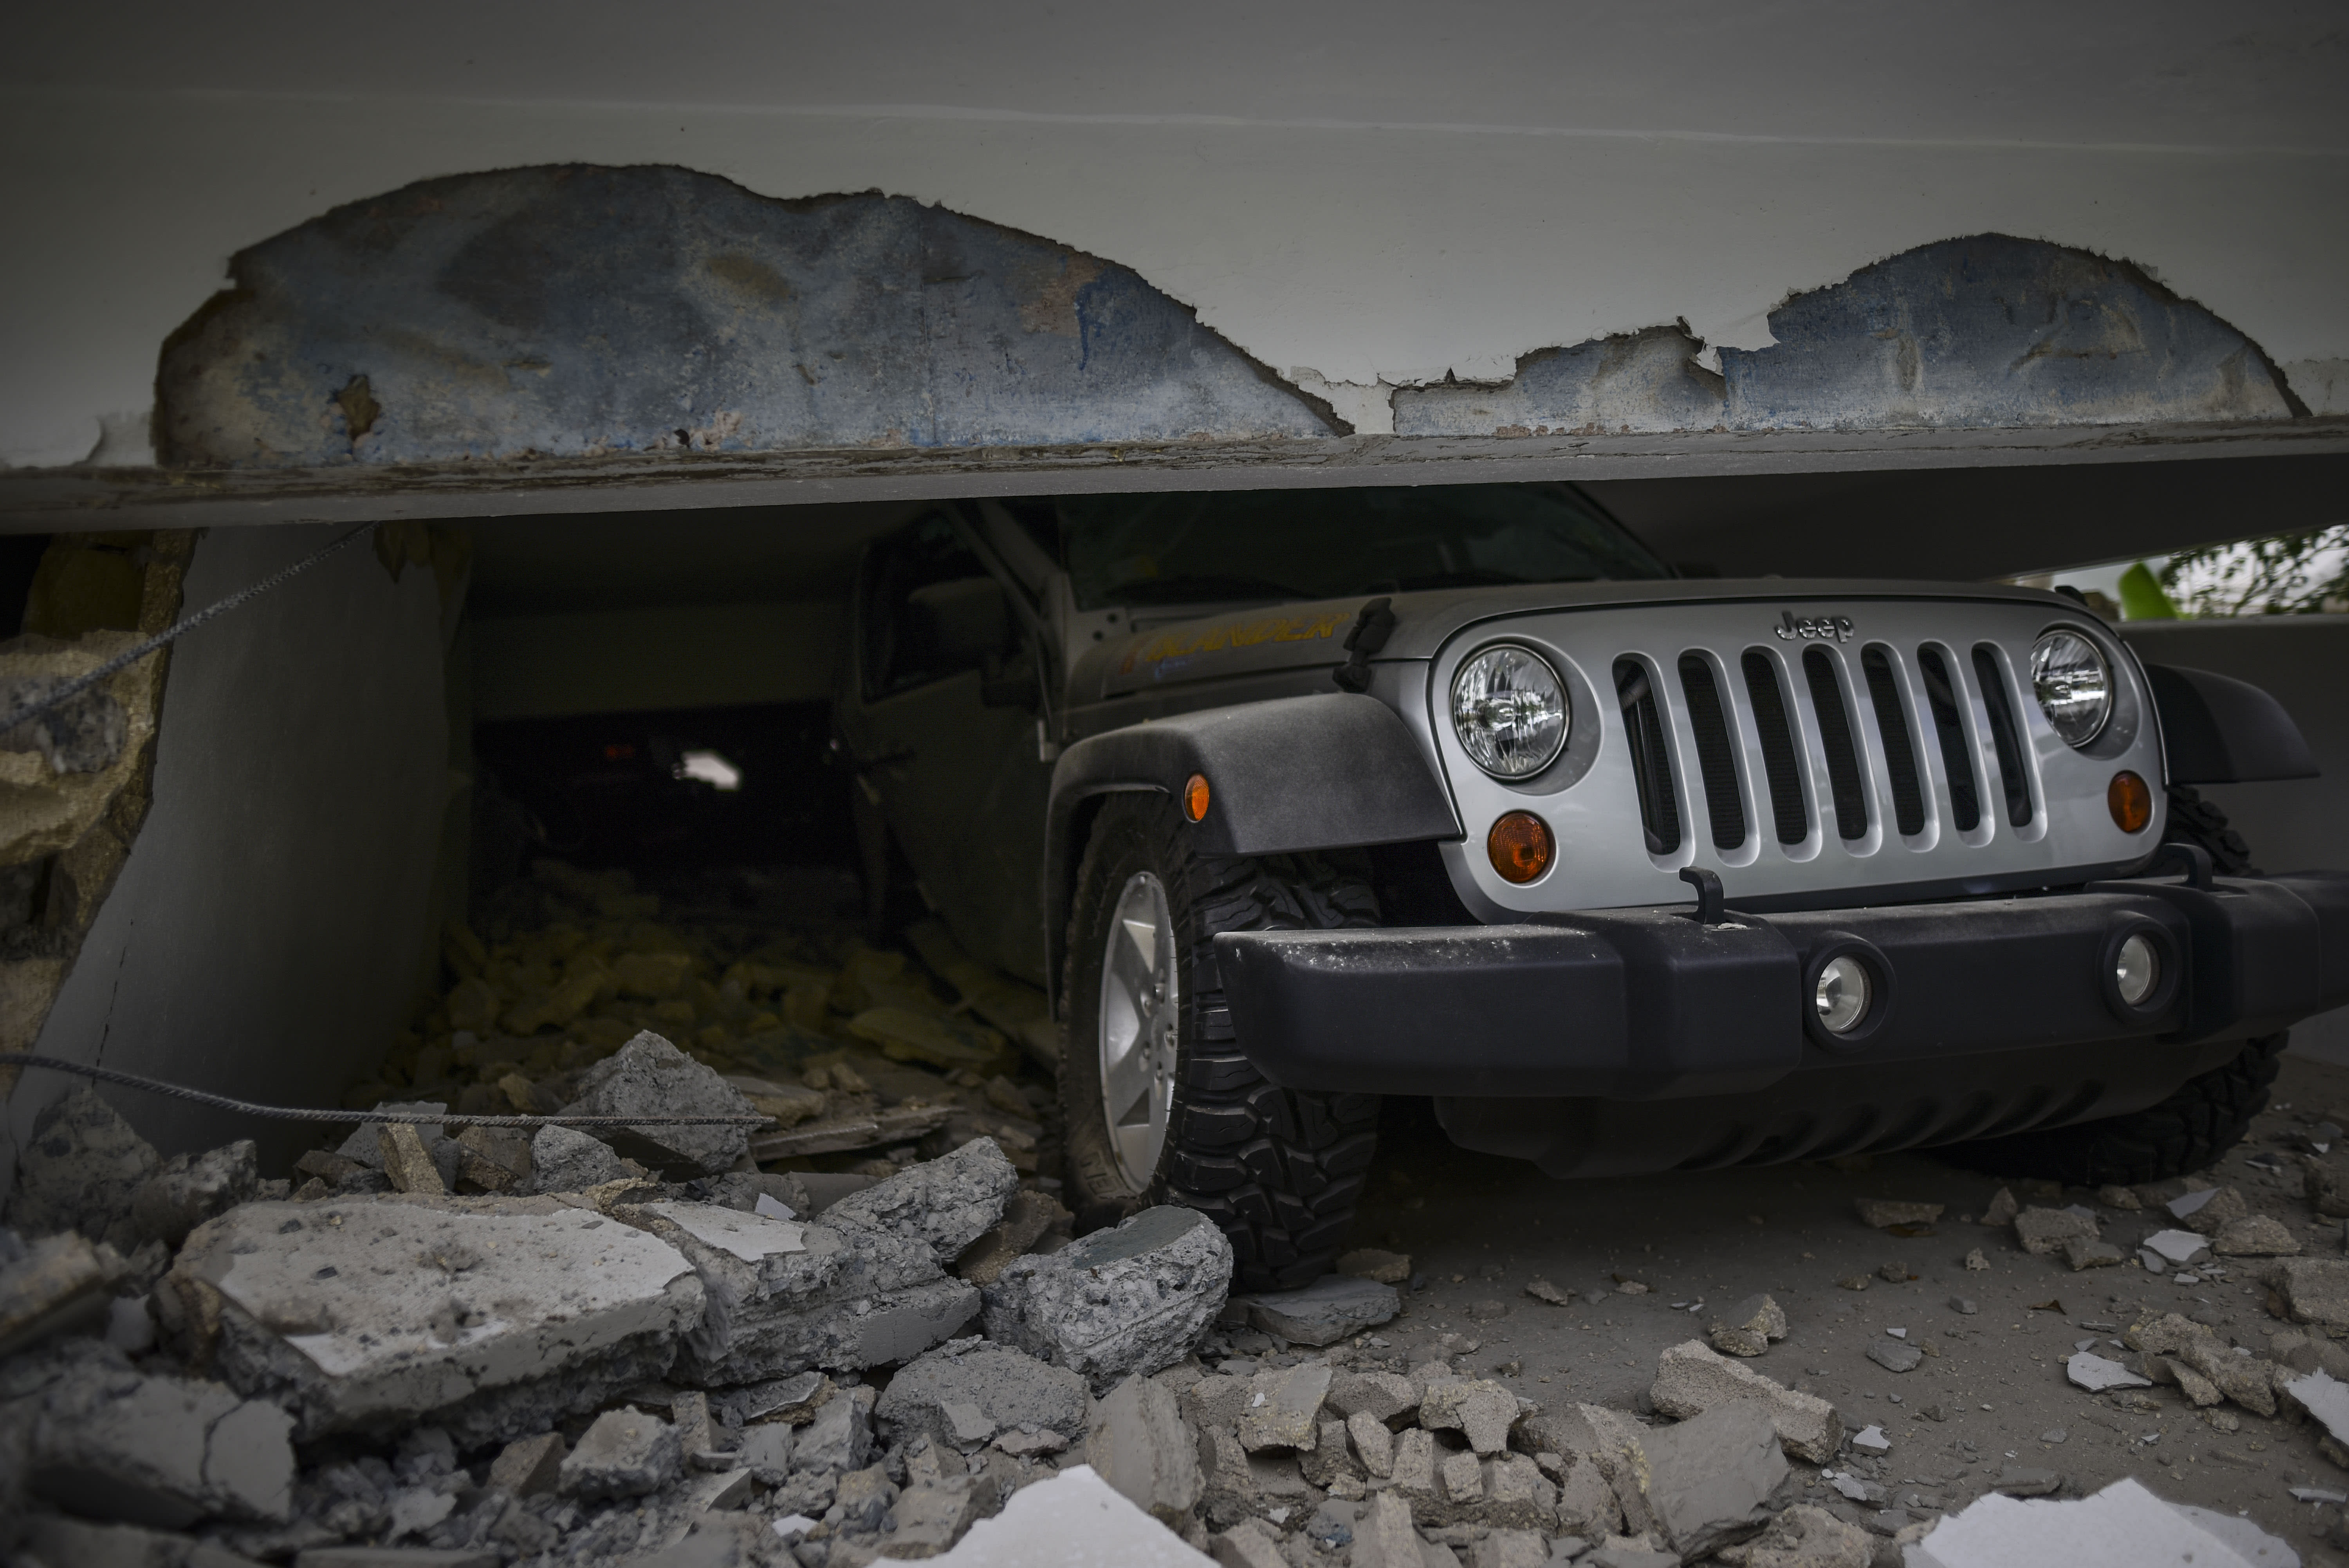 A car is crushed under a home that collapsed after the previous day's magnitude 6.4 earthquake in Yauco, Puerto Rico, Wednesday, Jan. 8, 2020. More than 250,000 Puerto Ricans remained without water on Wednesday and another half a million without power, which also affected telecommunications. (AP Photo/Carlos Giusti)